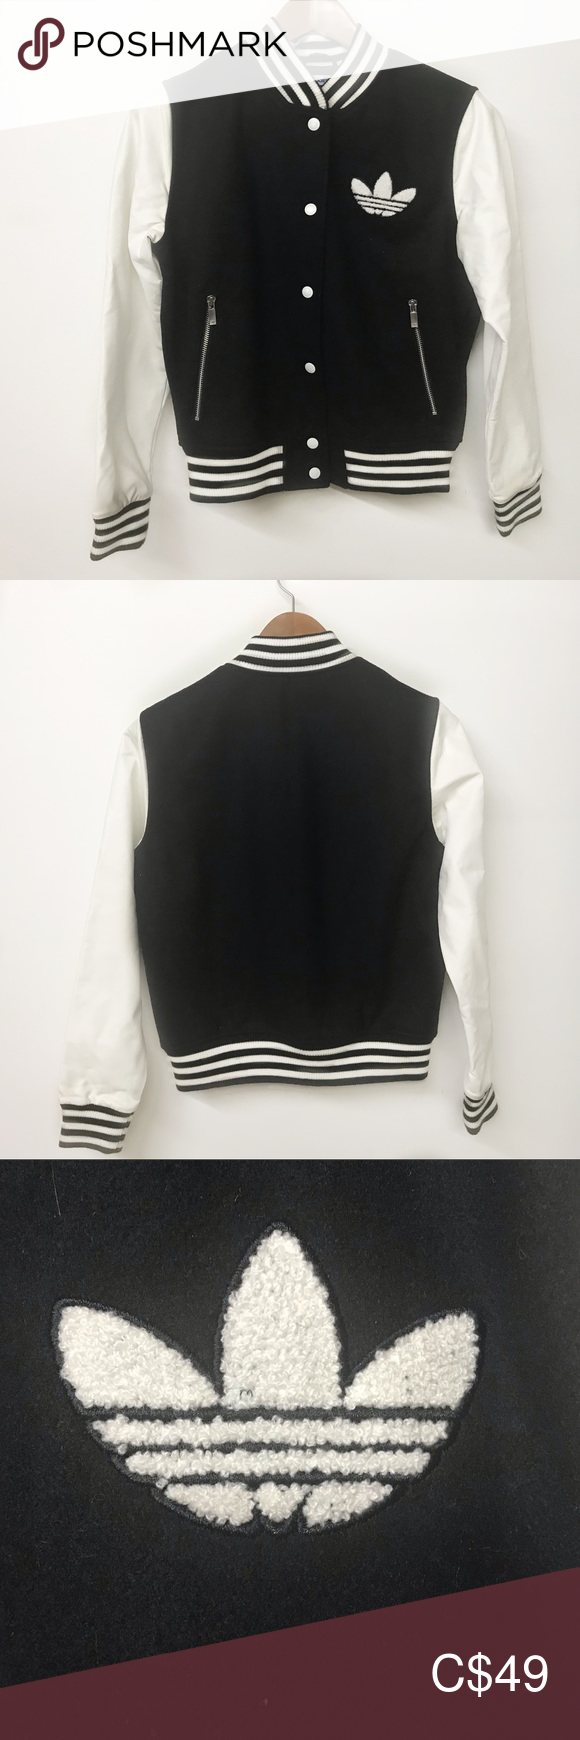 Adidas Varsity Jacket 40 Year Celebration limited Adidas Varsity Jacket 40 Year Celebration limited Trefoil Women's medium Excellent Used condition Body is 70% polyester 30% wool Lining 100% recycled polyester Sleeves 100% polyurethane adidas Jackets & Coats #varsityjacketoutfit